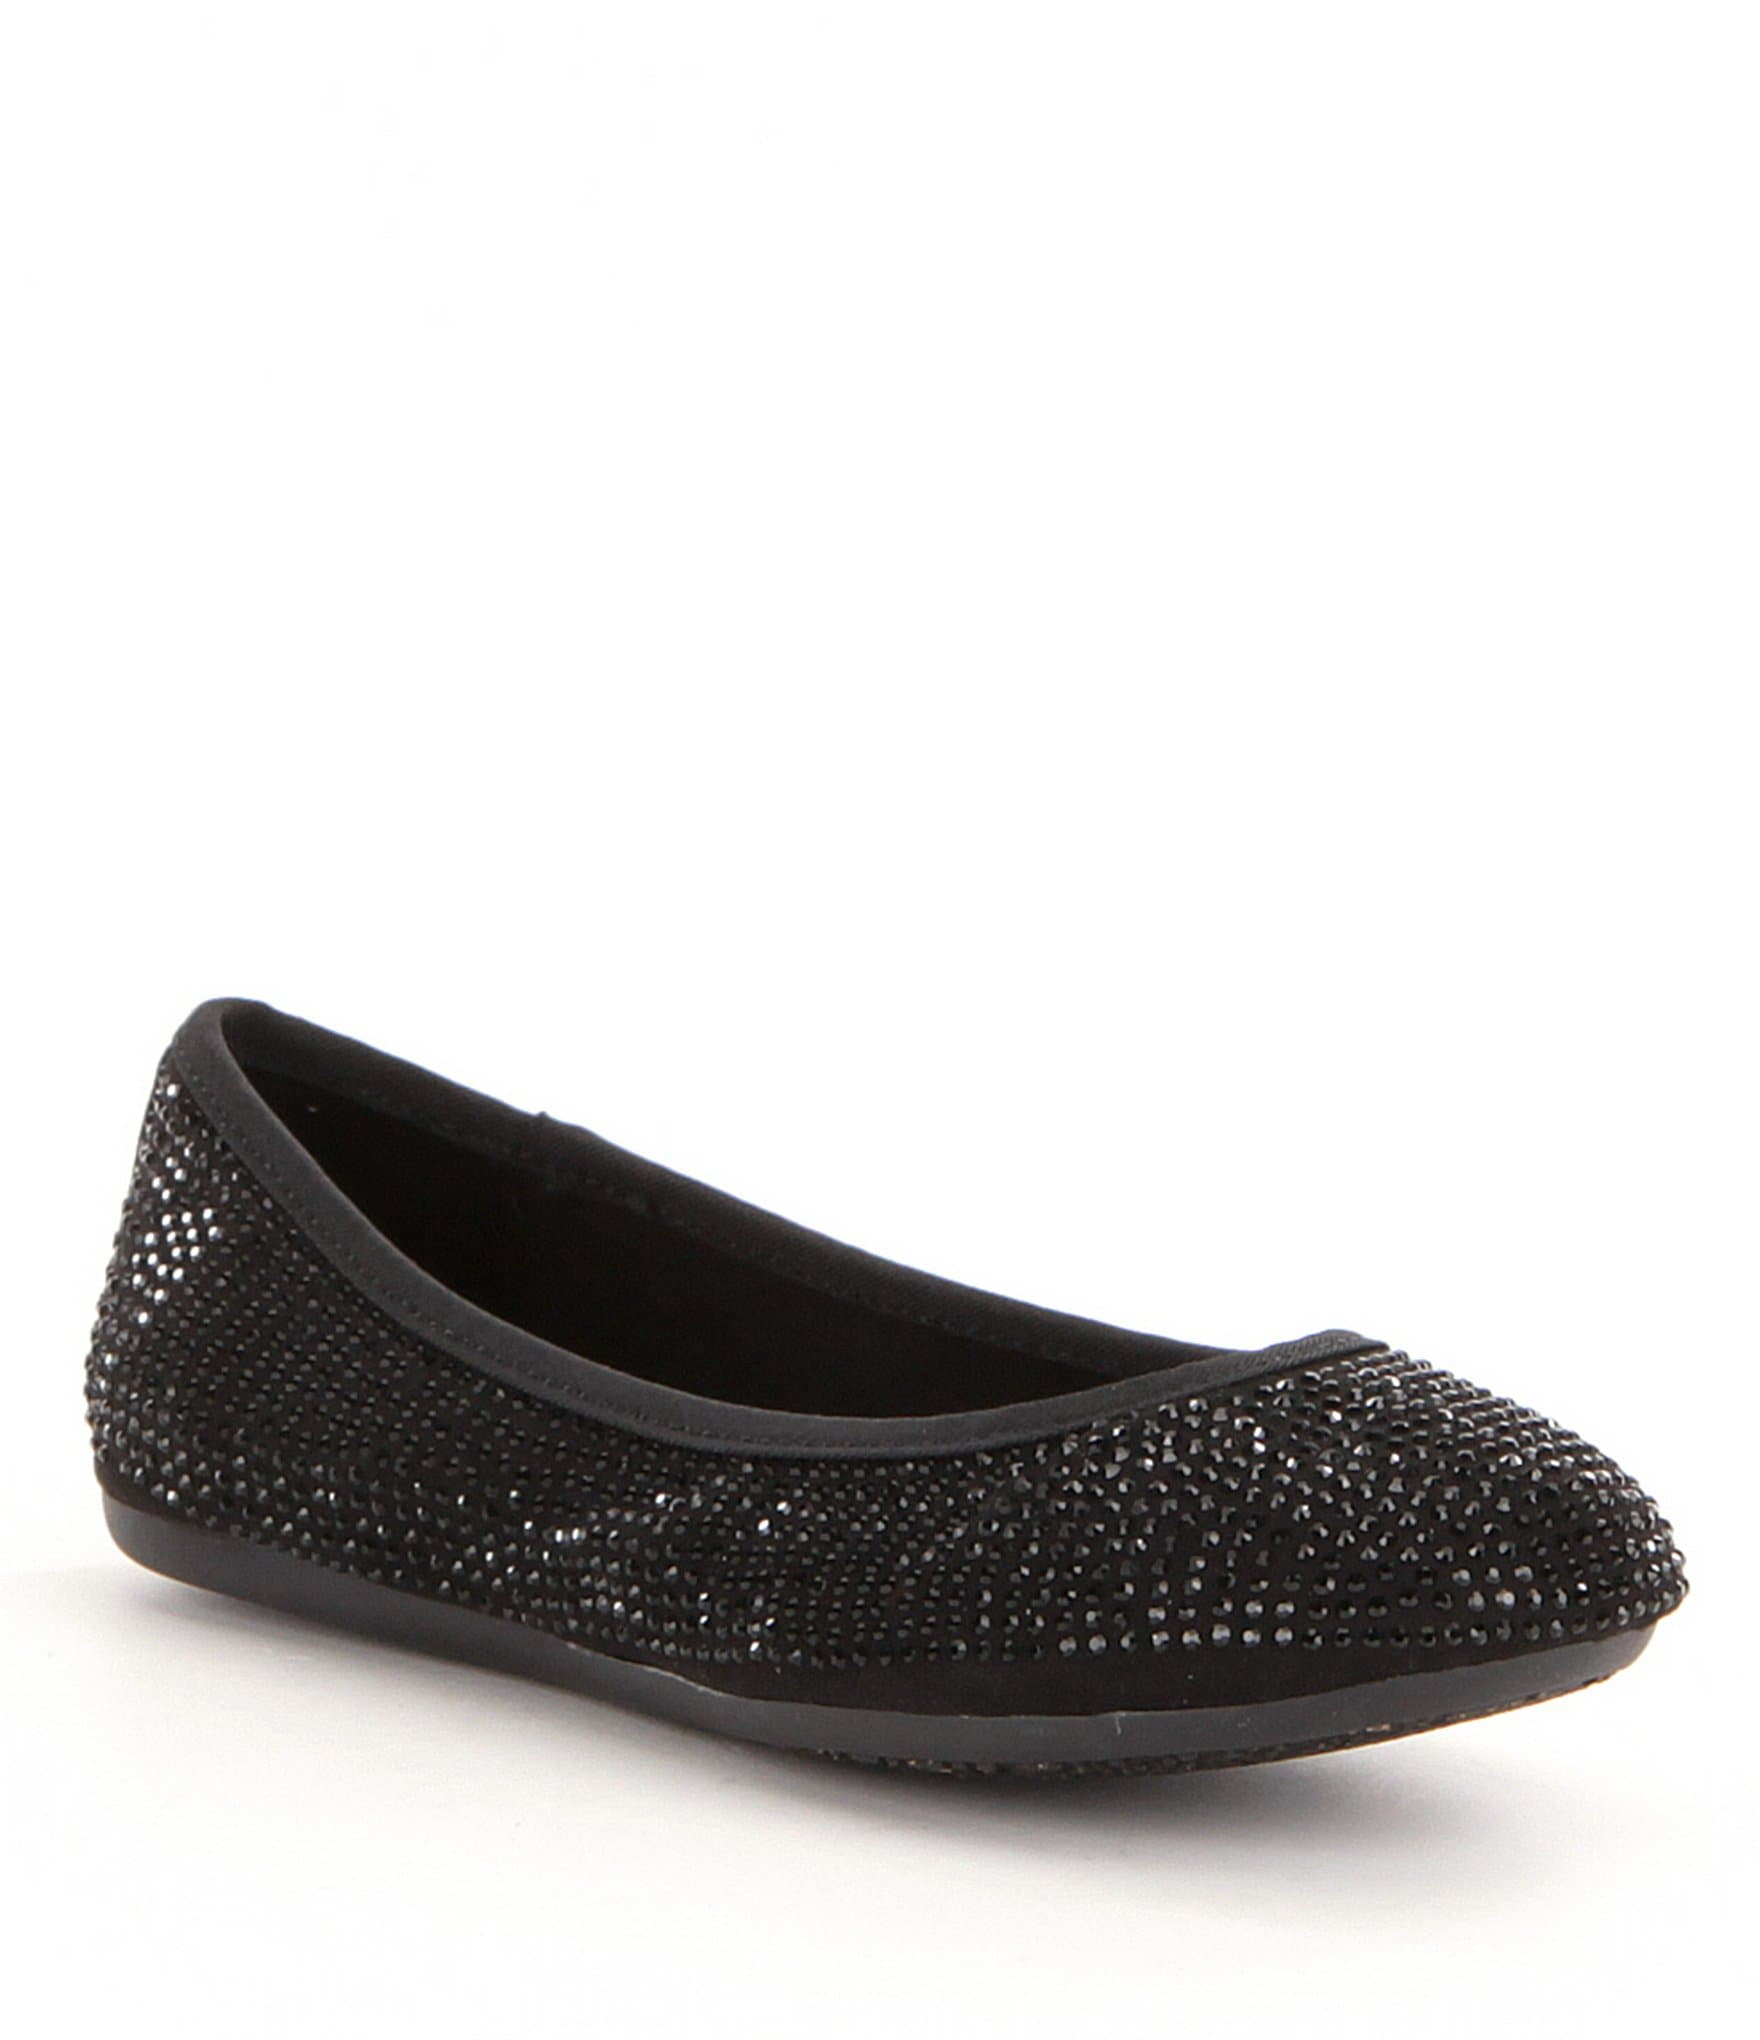 Gb Girls Jolly Girl Jeweled Ballet Flats Dillards